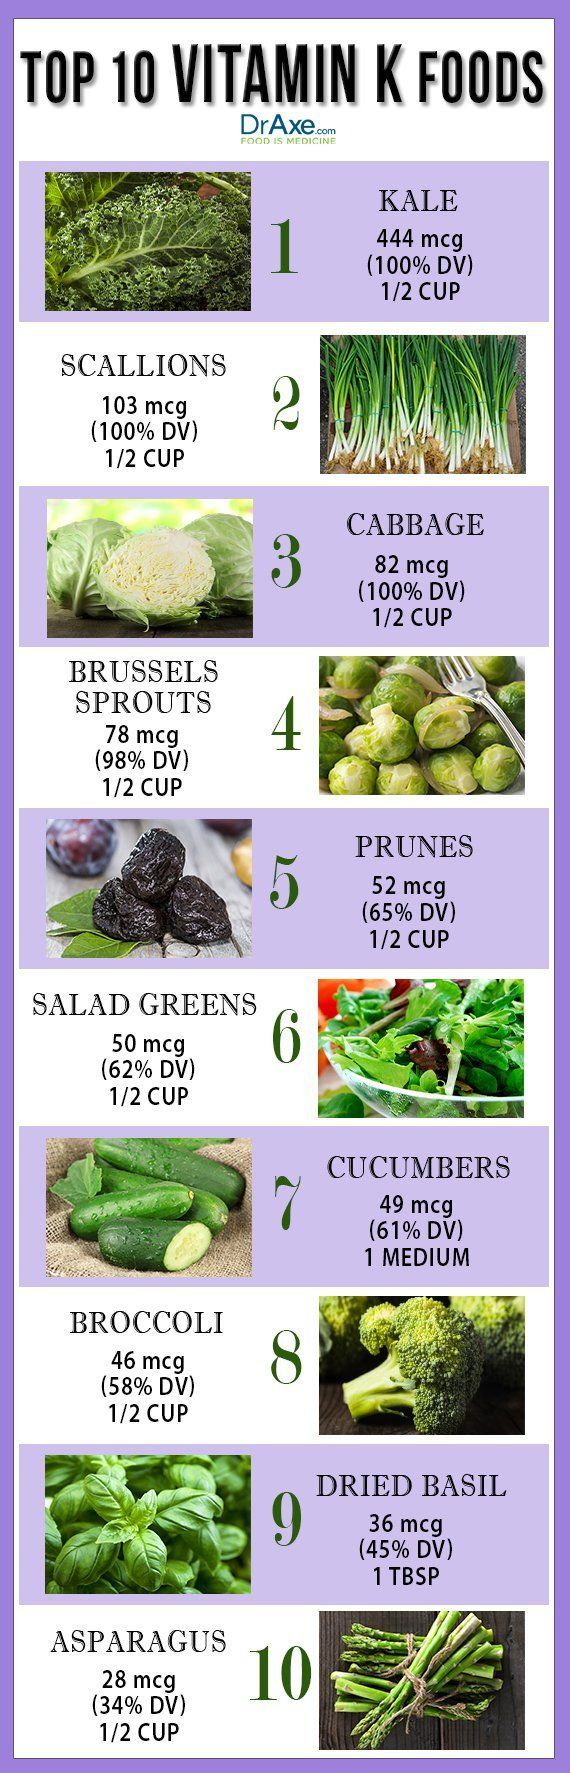 Top 10 Vitamin K Foods